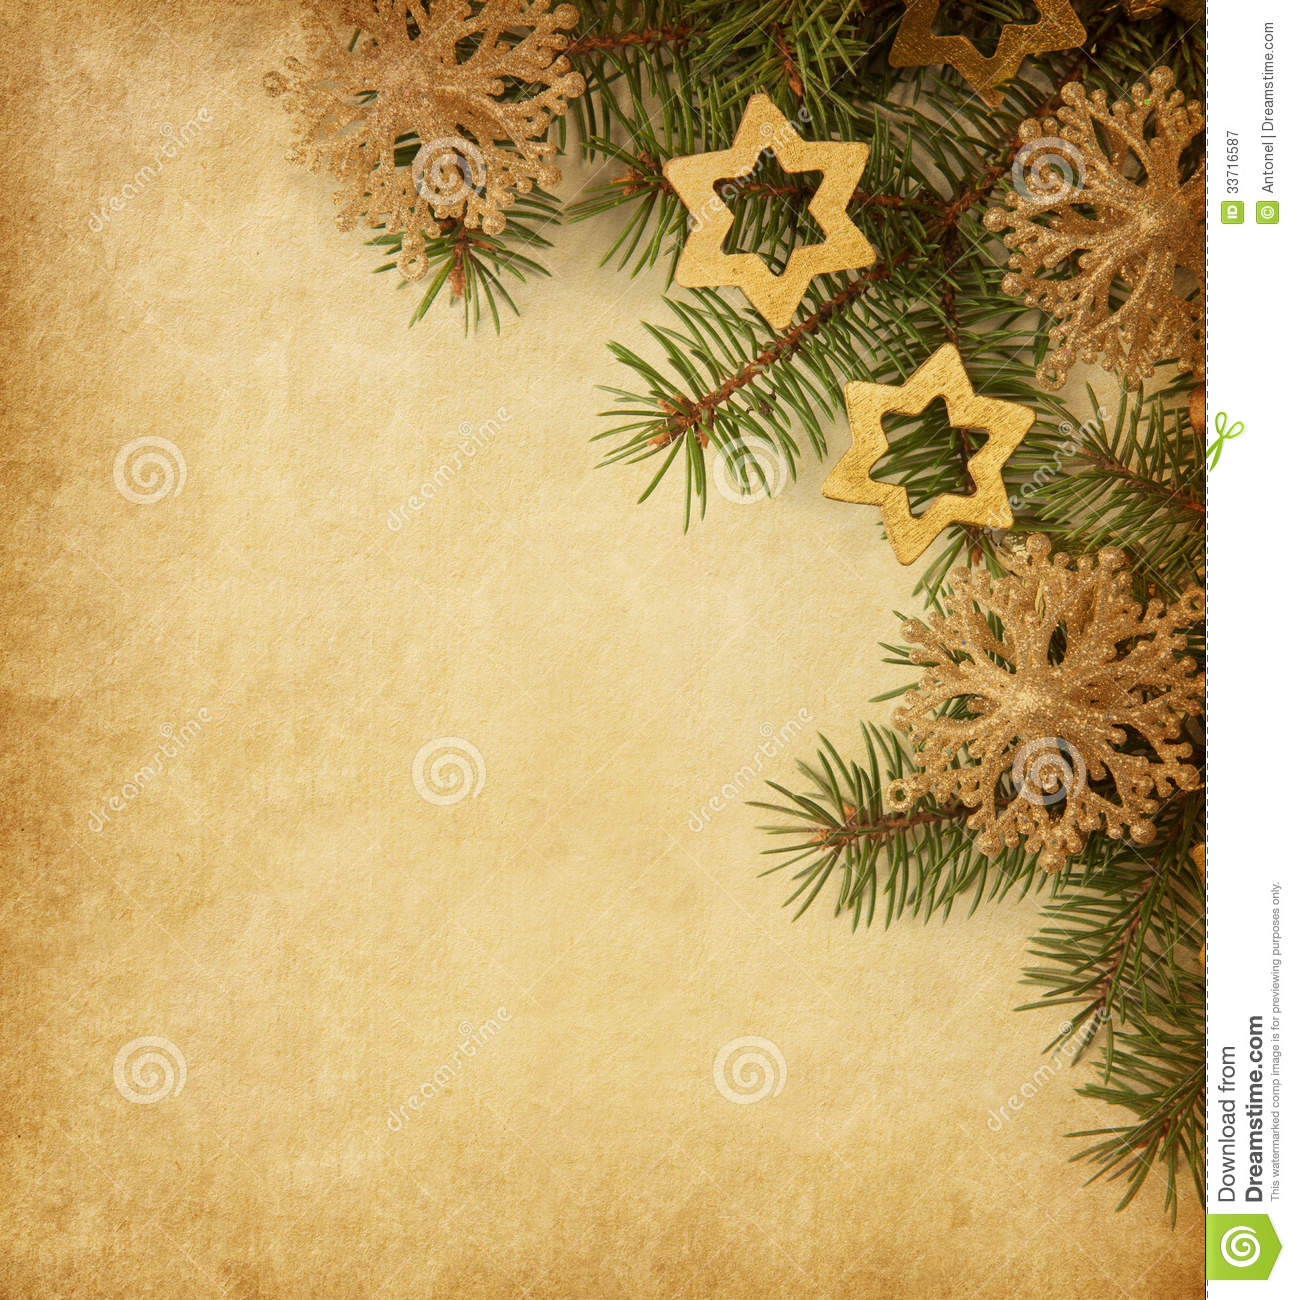 download paper background with christmas border stock image image of letter elegance